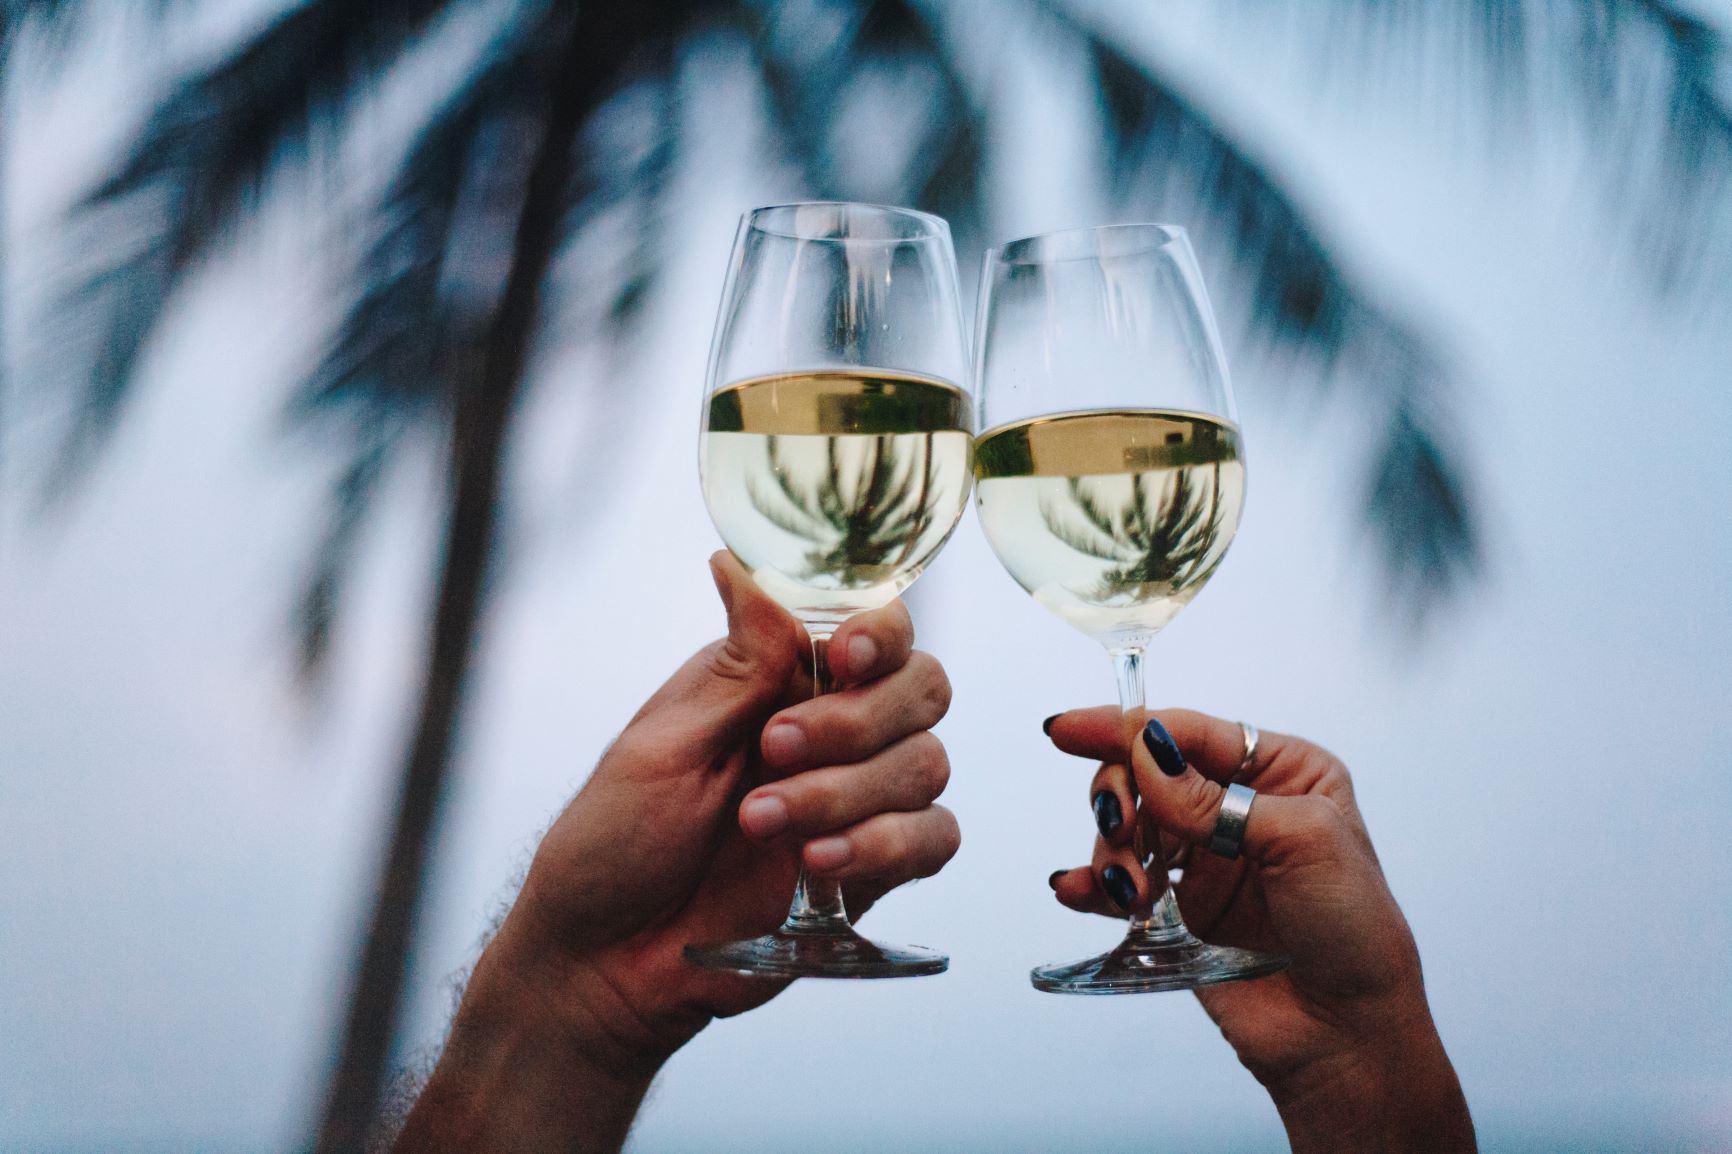 Wine Delivery Singapore - Buy Wine Online - Free Wine Delivery